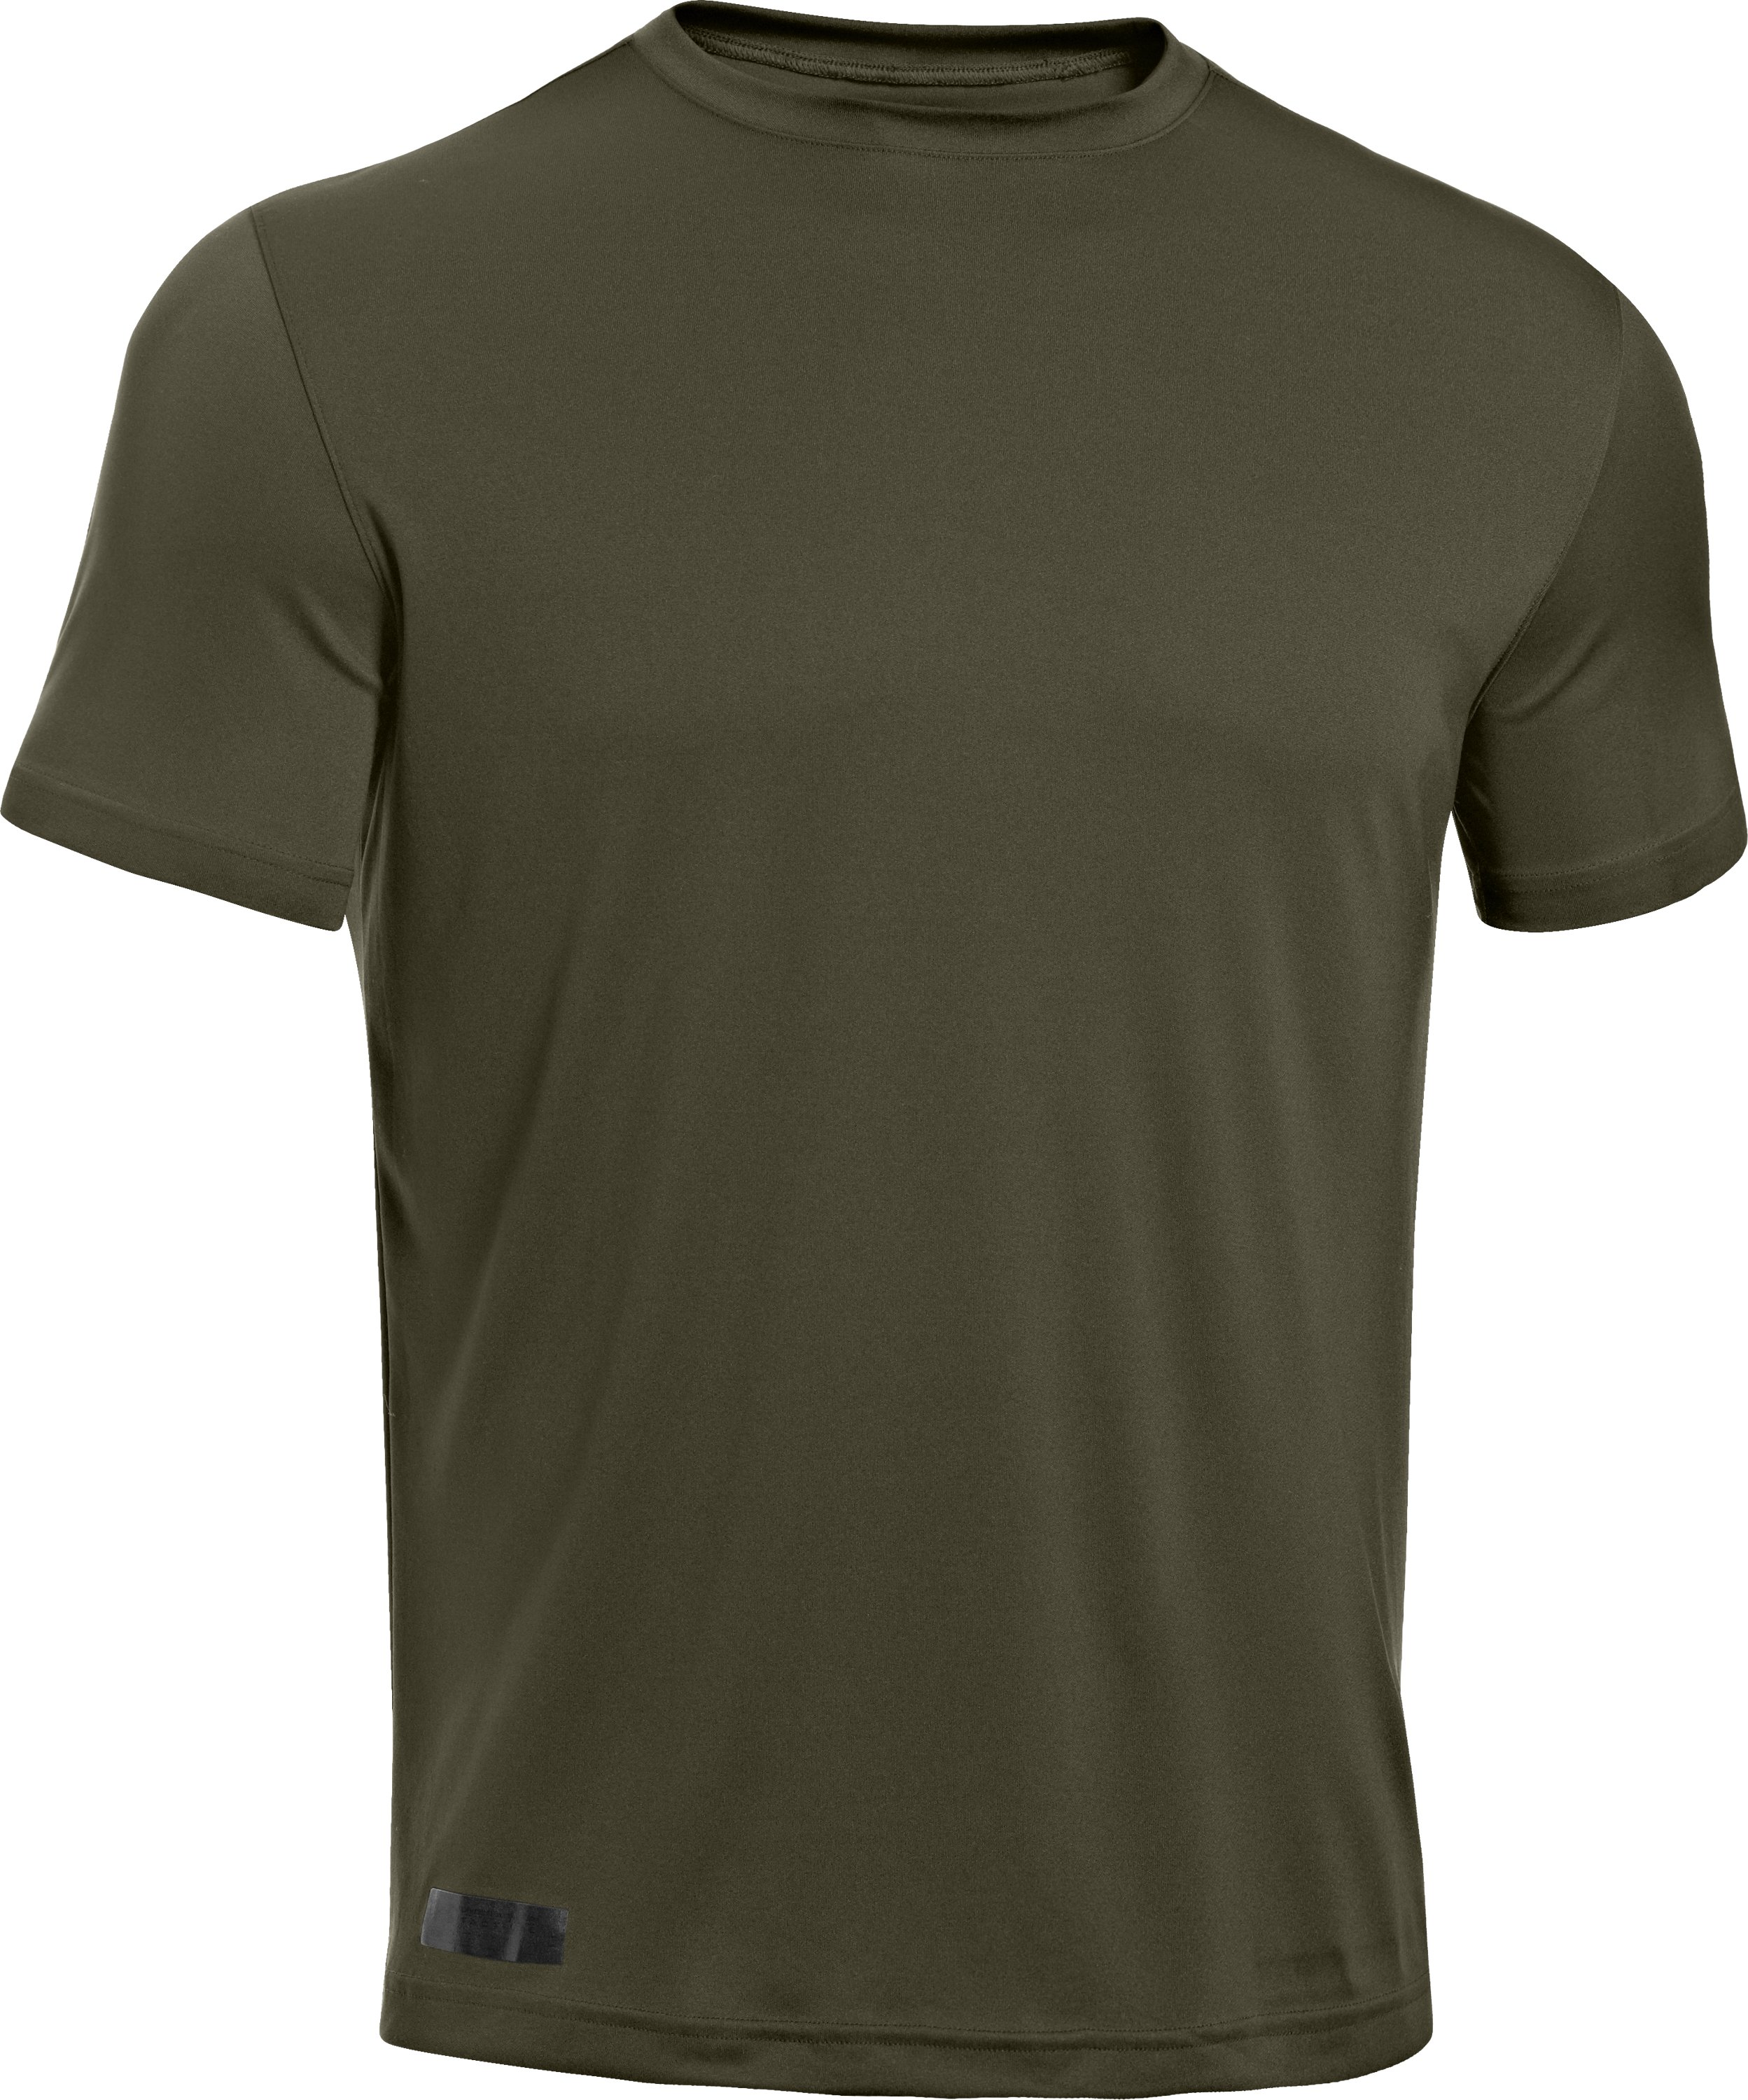 Men's HeatGear® Tactical Short Sleeve T-Shirt, Marine OD Green